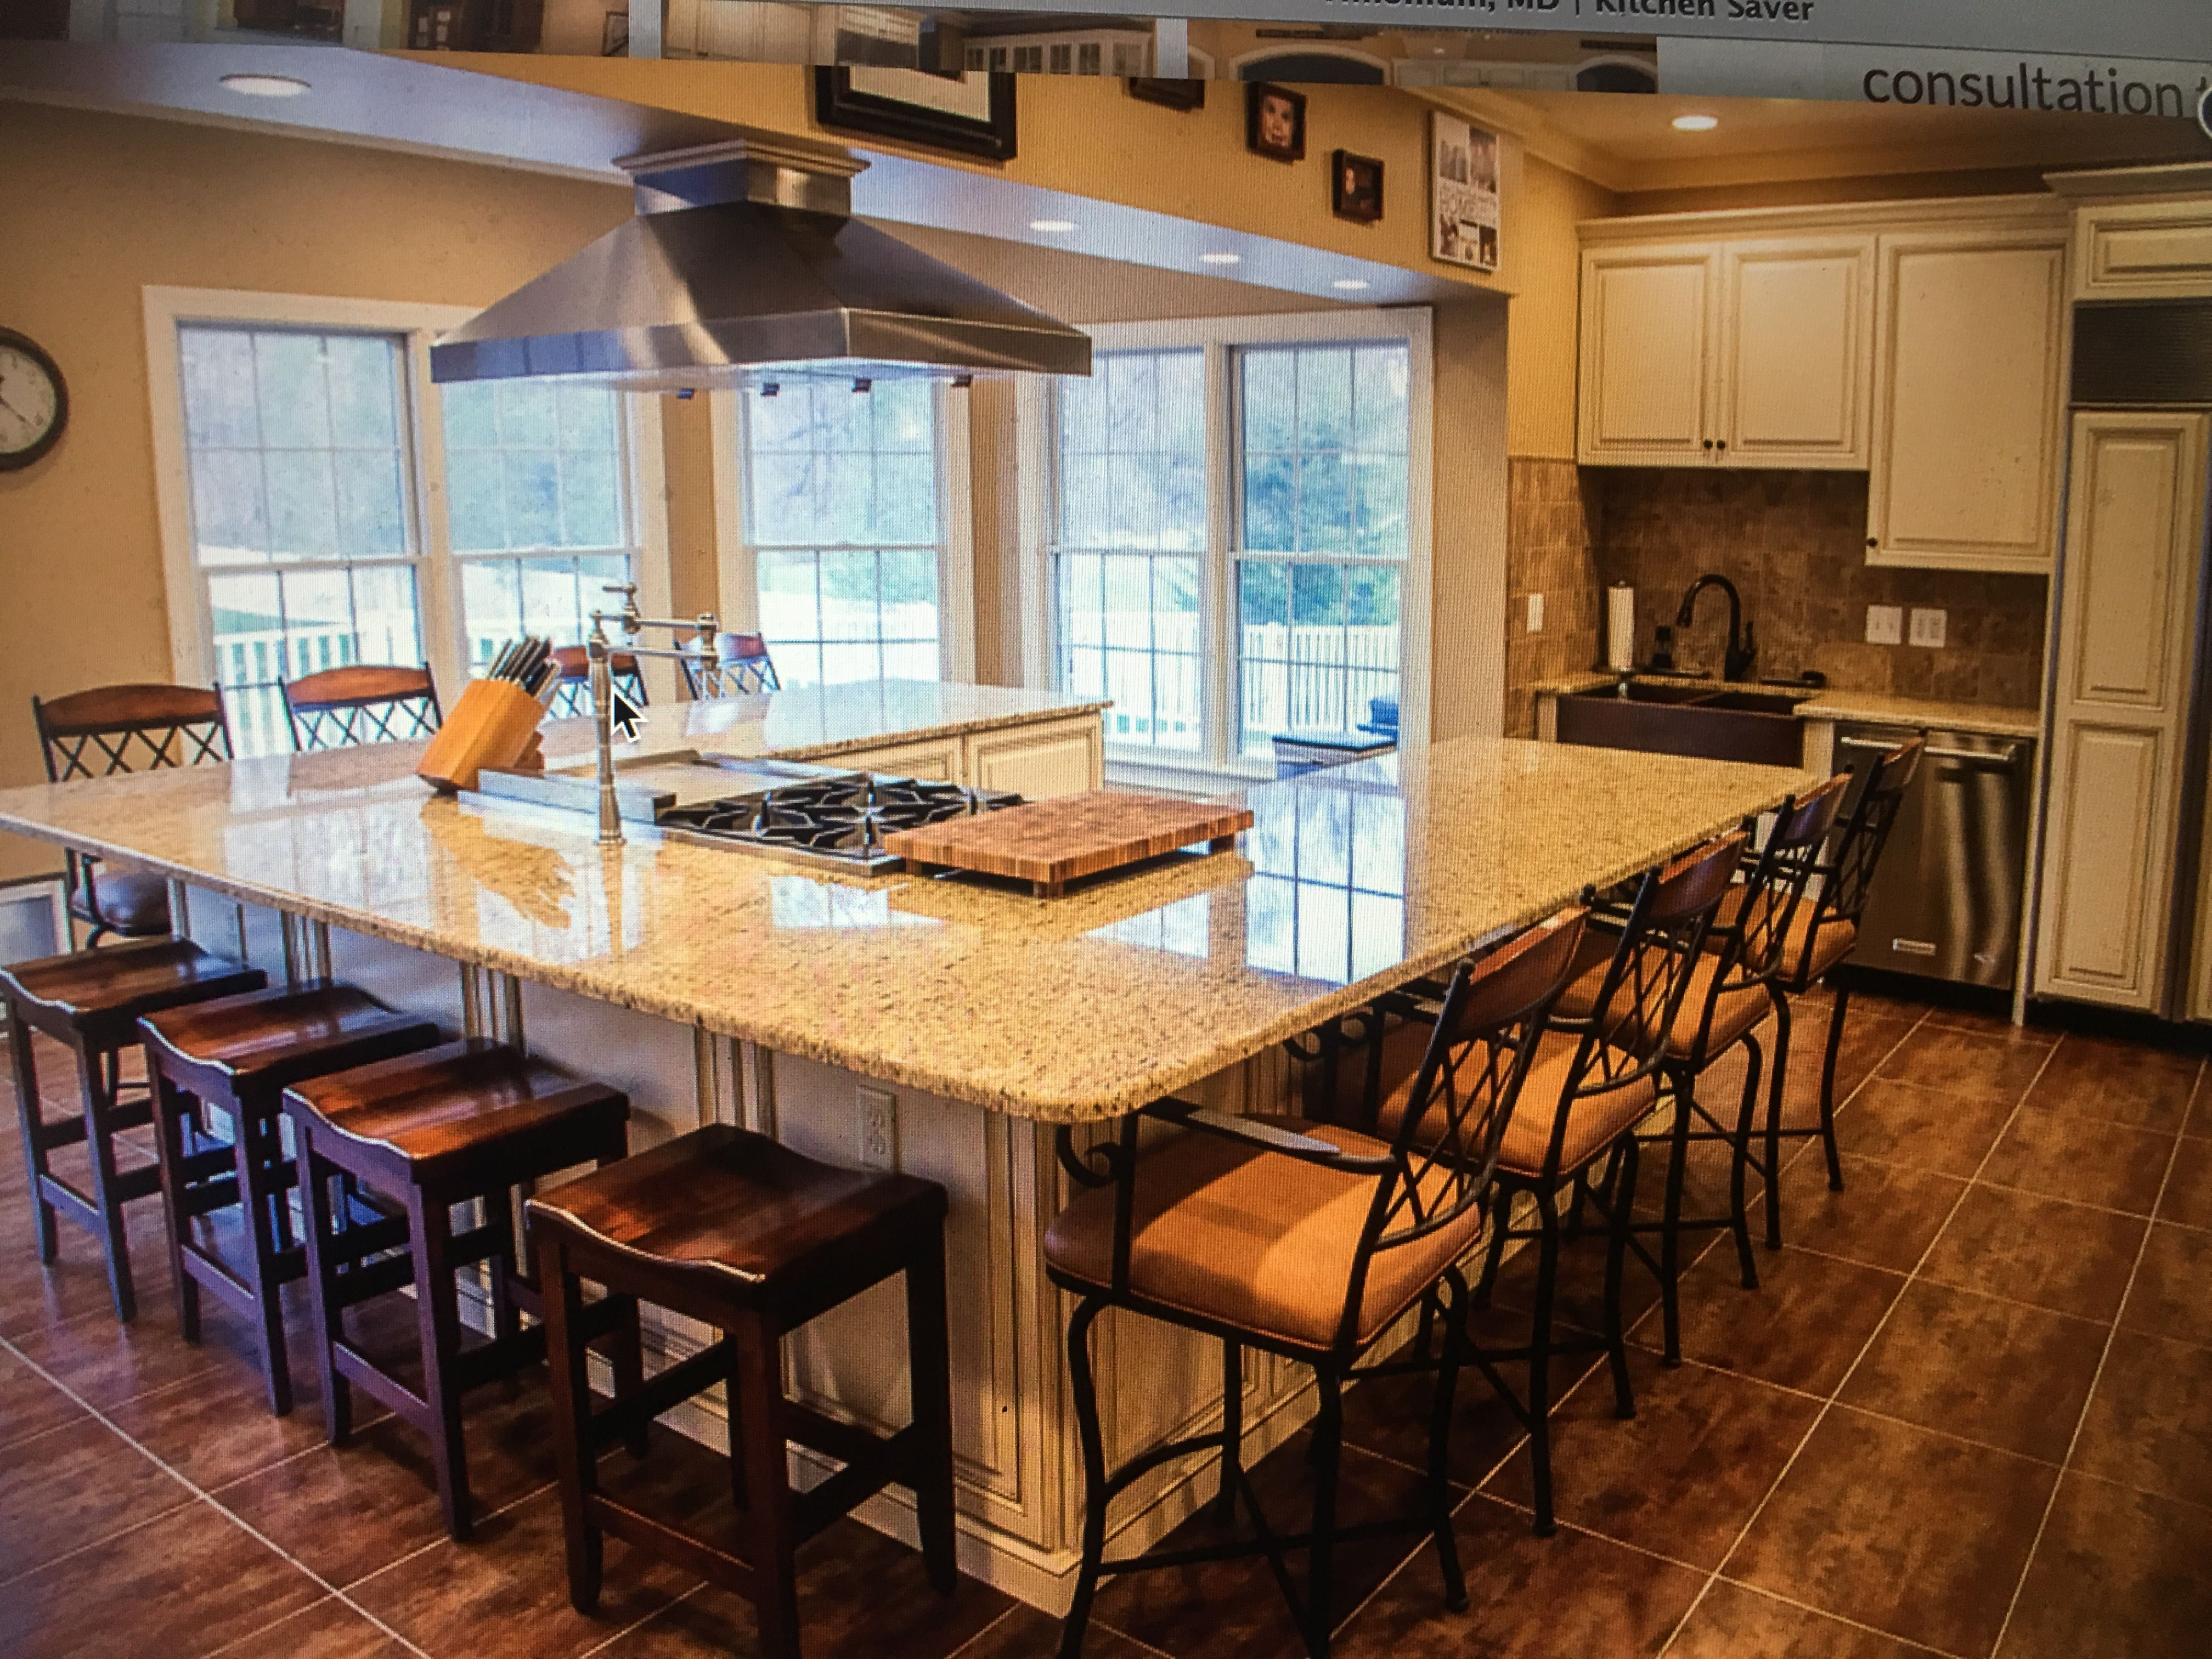 Pin by 22 on 22 large kitchen layouts kitchen island - Kitchen island with cooktop and seating ...